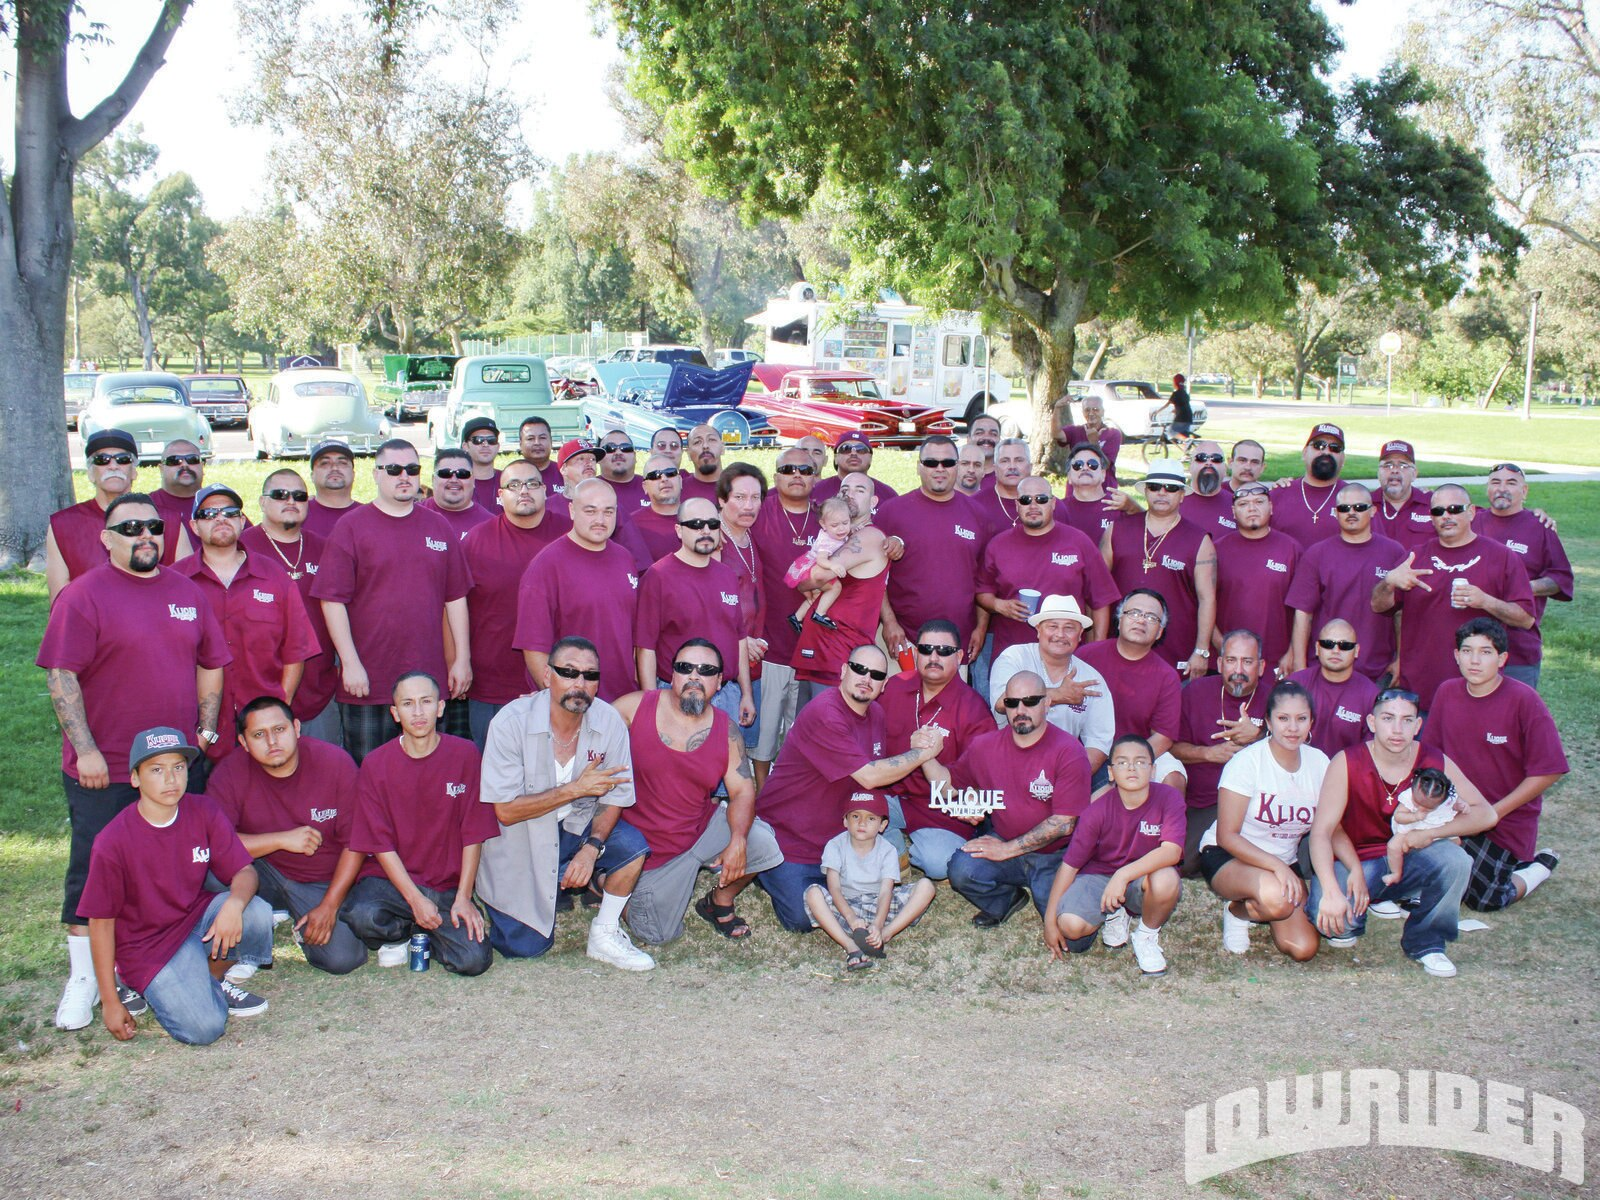 1302-lrmp-01-o-kliques-history-picnic-event-group-photo1